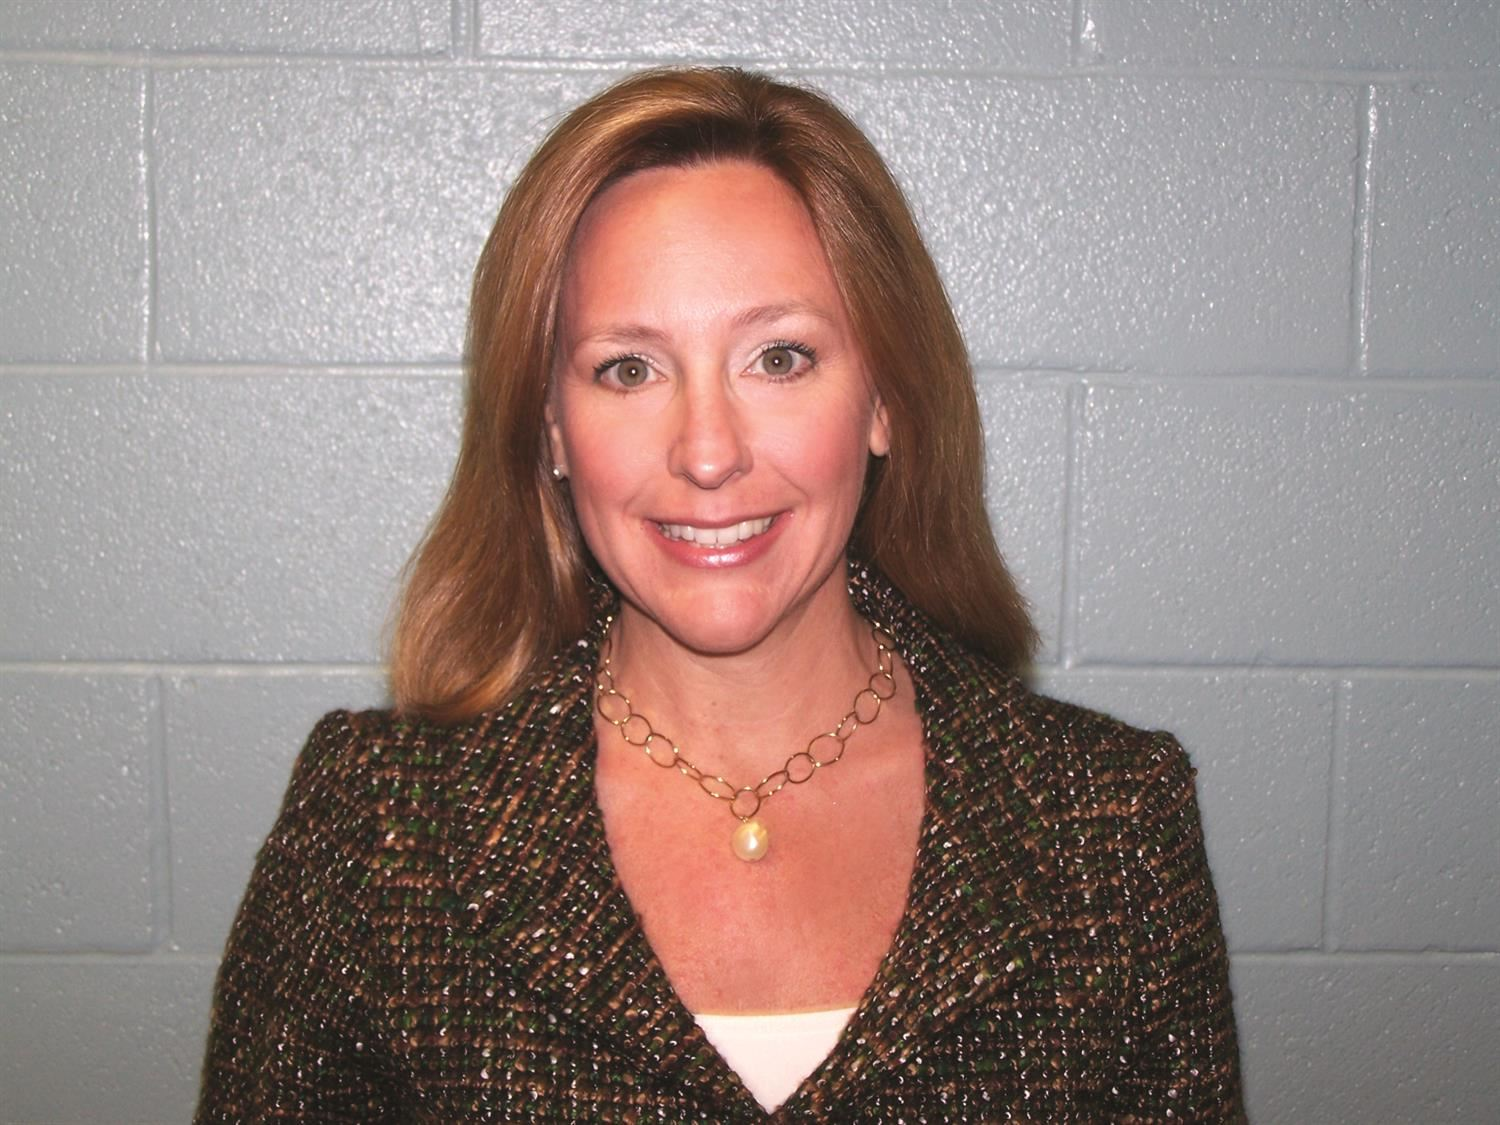 Image of Leanne Sheppard, Principal.